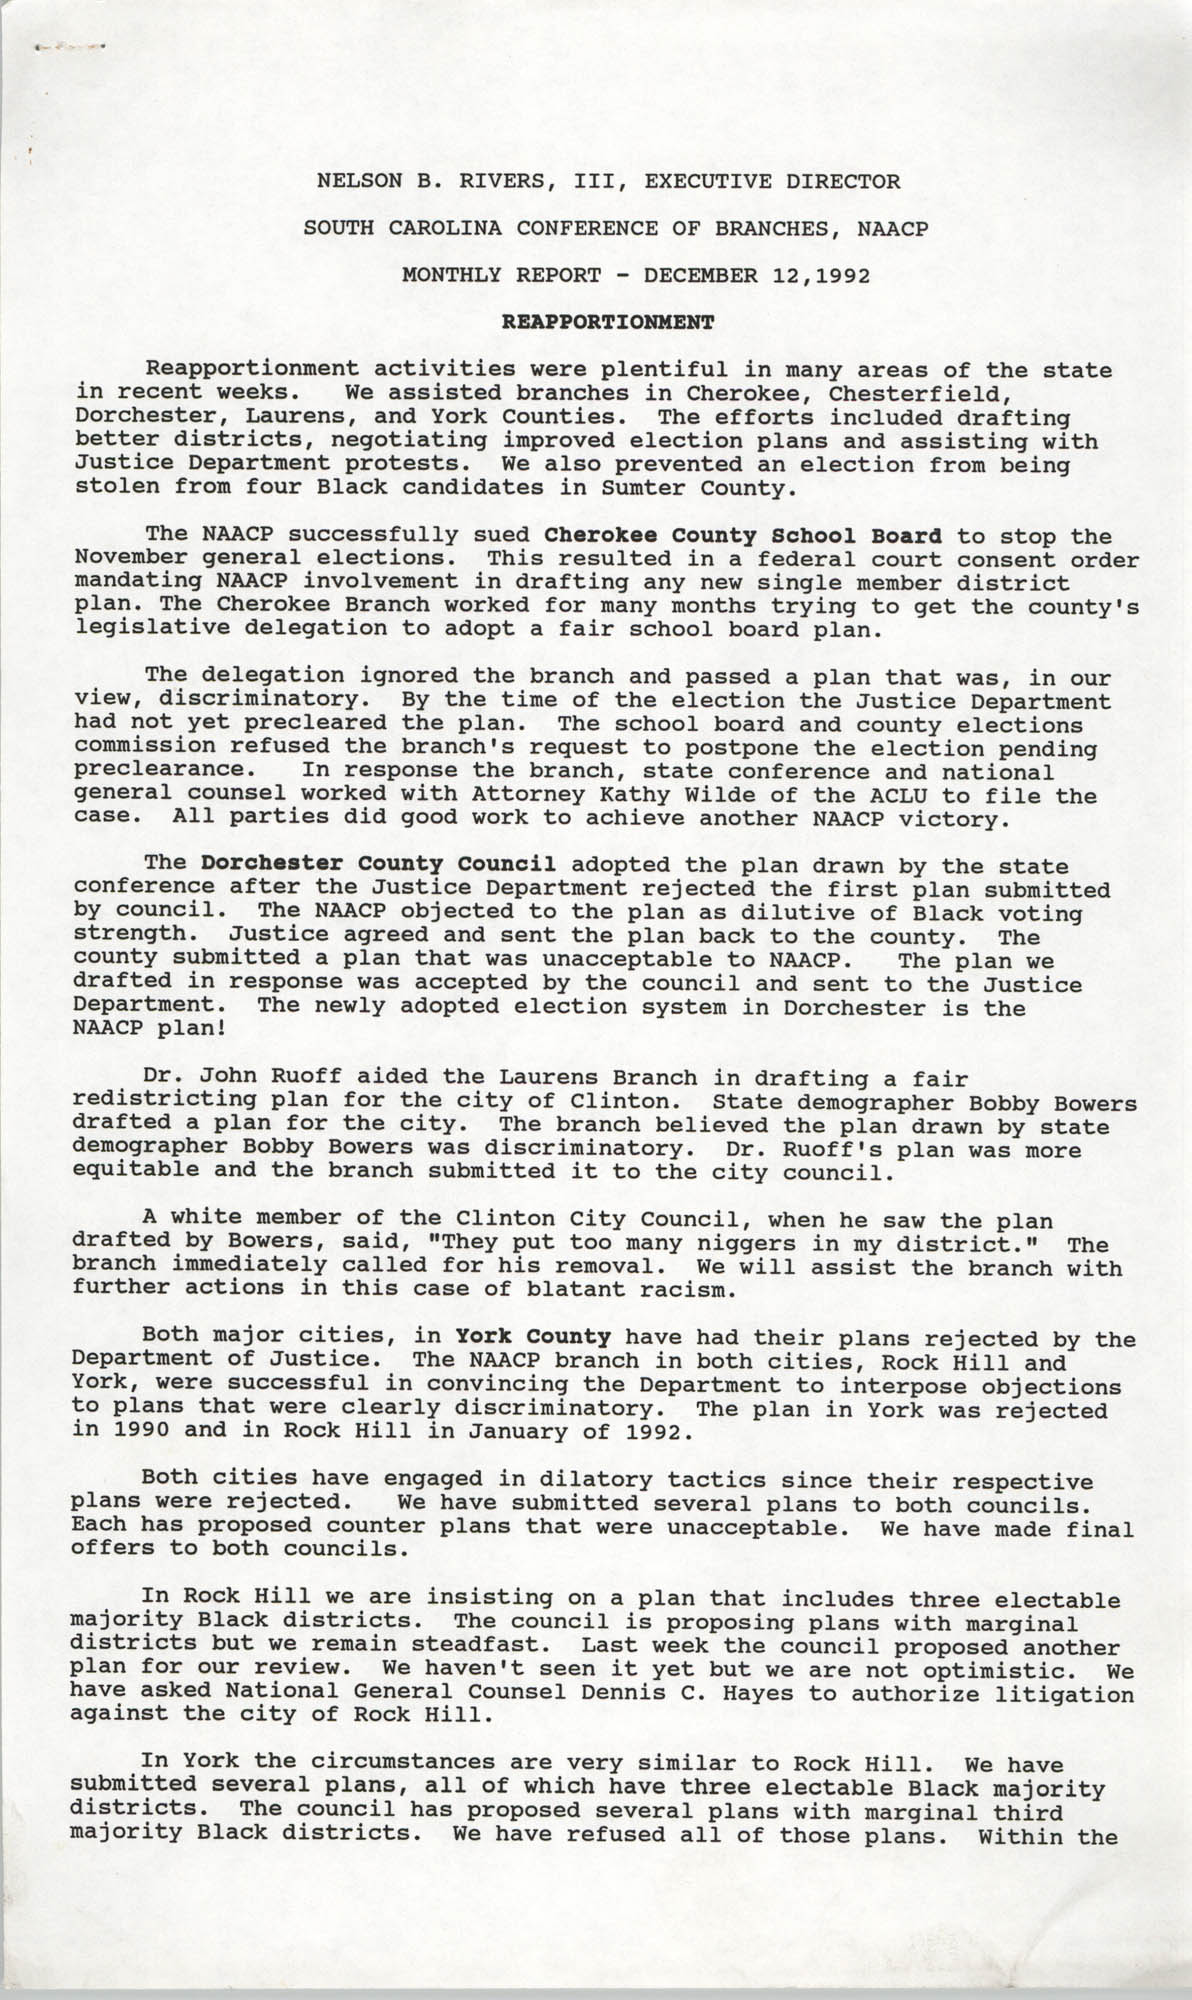 South Carolina Conference of Branches, NAACP Monthly Report, December 12, 1992